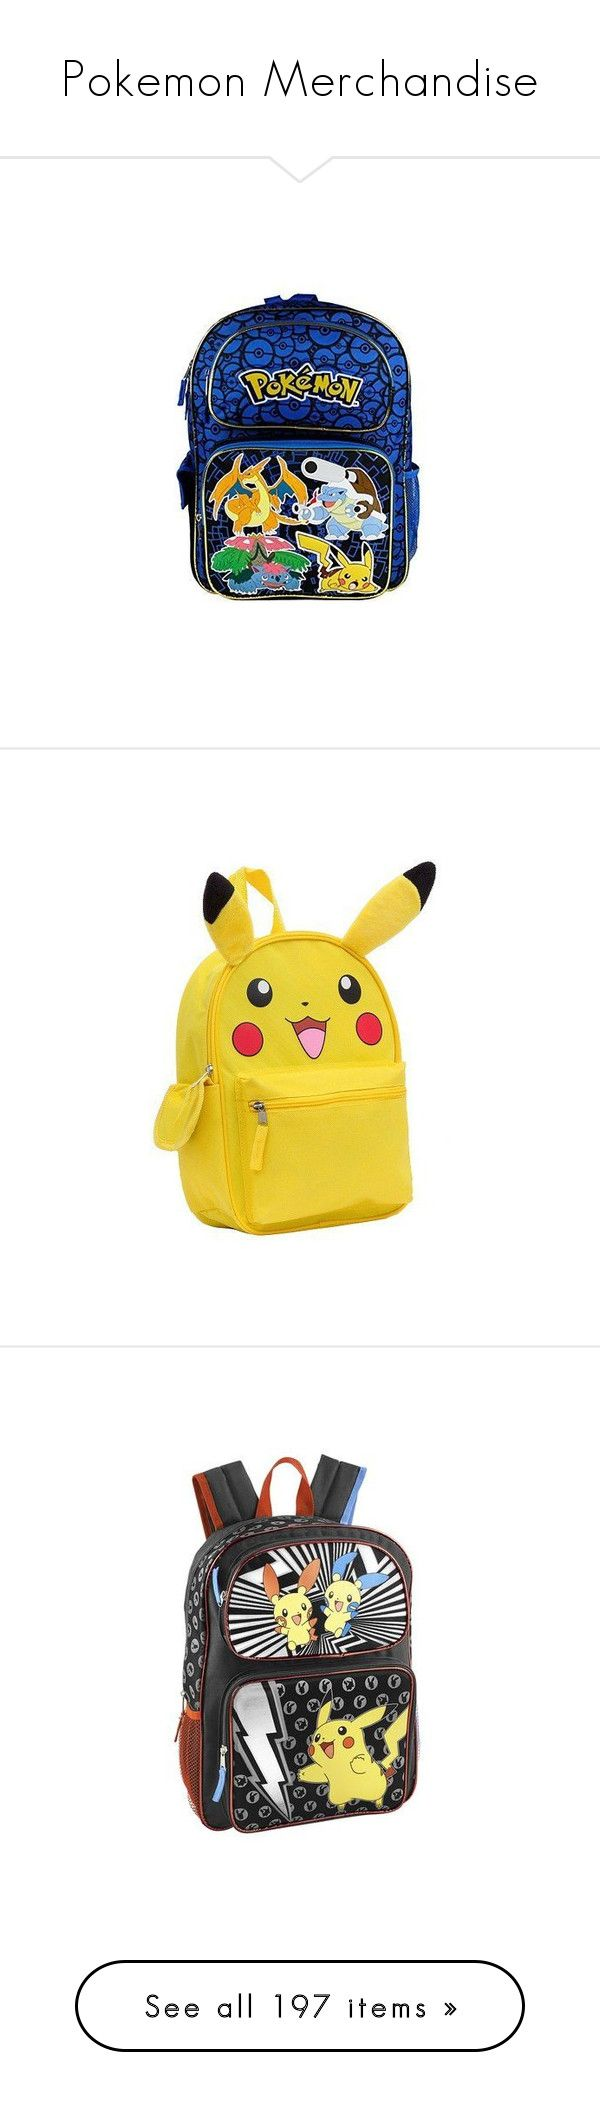 """""""Pokemon Merchandise"""" by candradeimos ❤ liked on Polyvore featuring bags, backpacks, blue bag, knapsack bag, day pack backpack, daypack bag, backpack bags, accessories, back pack and pokemon"""